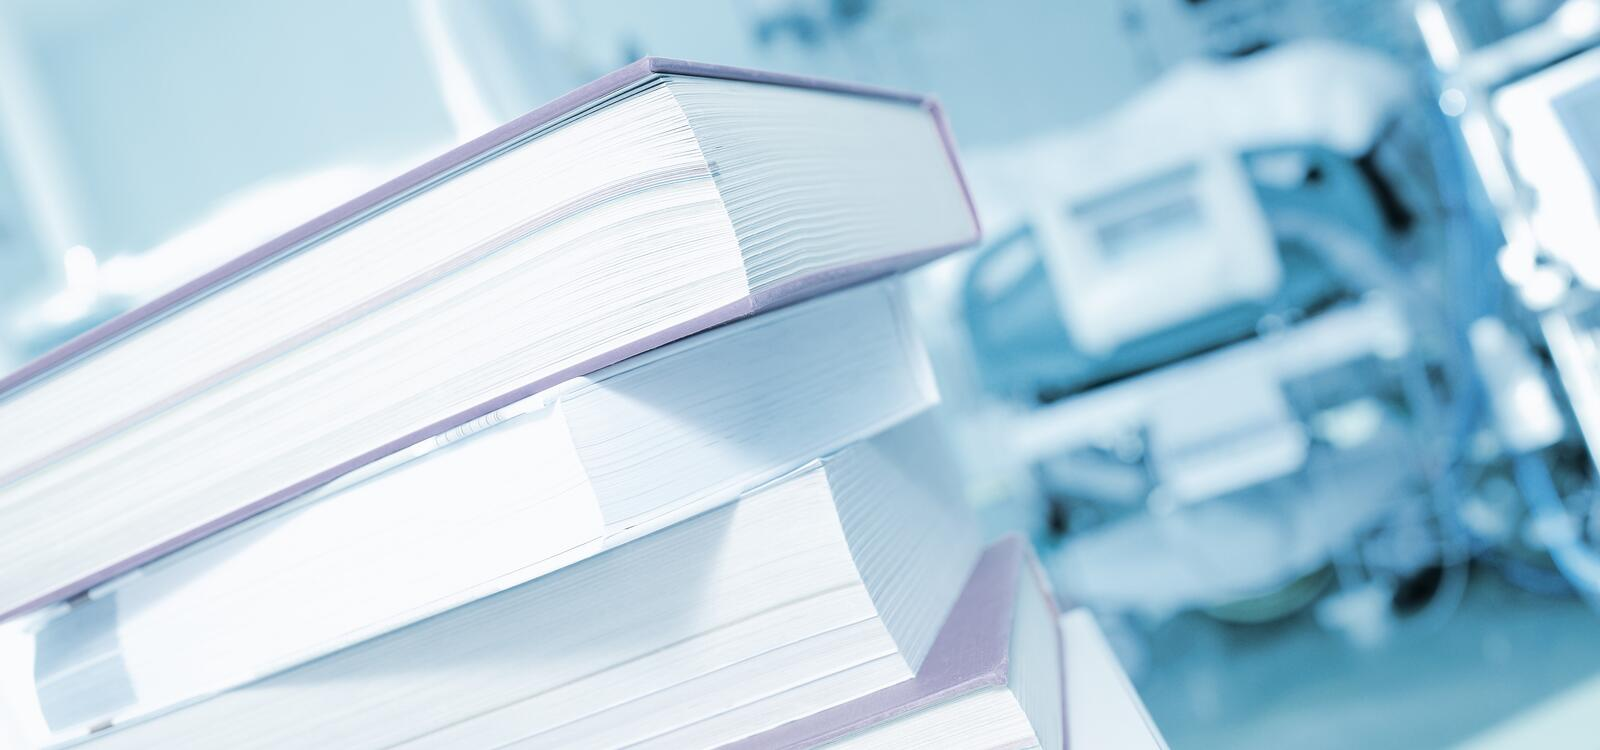 In front of a blue background, a stack of four textbooks sits on a white table